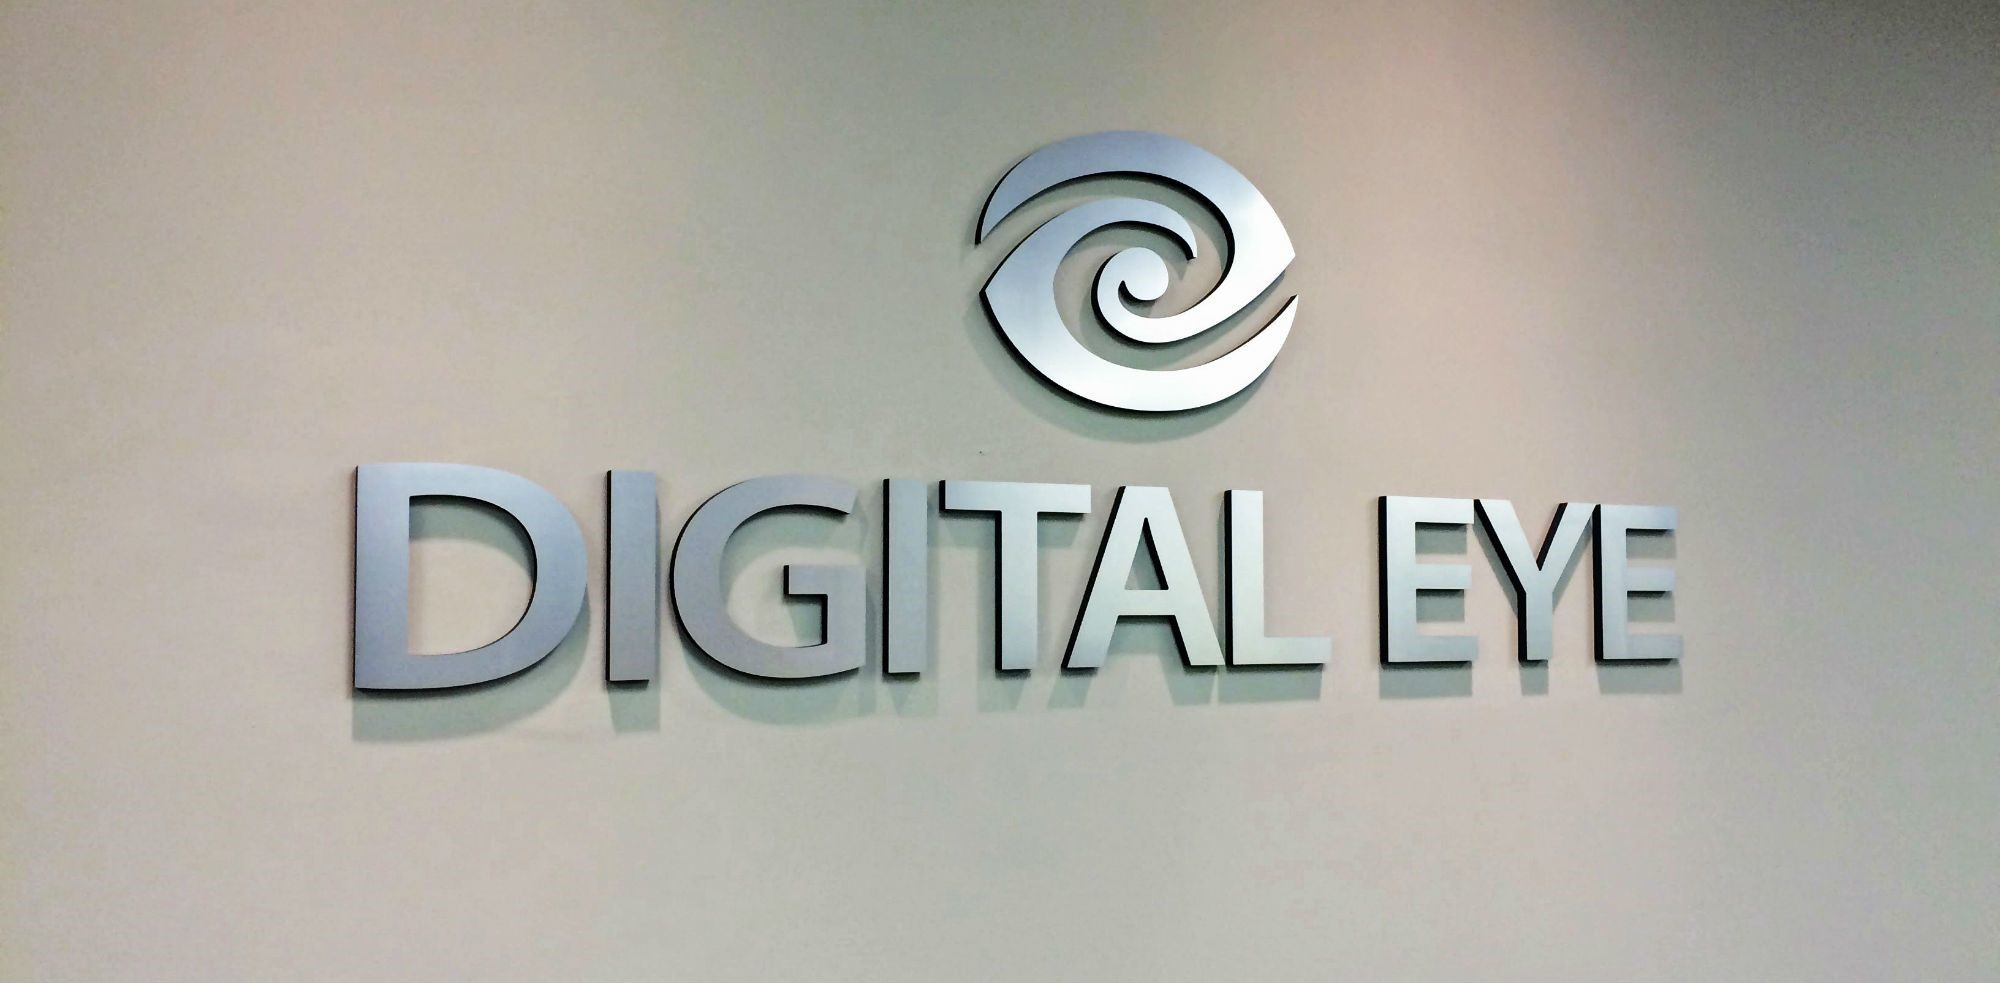 Dimensional Logo Sign for Digital Eye